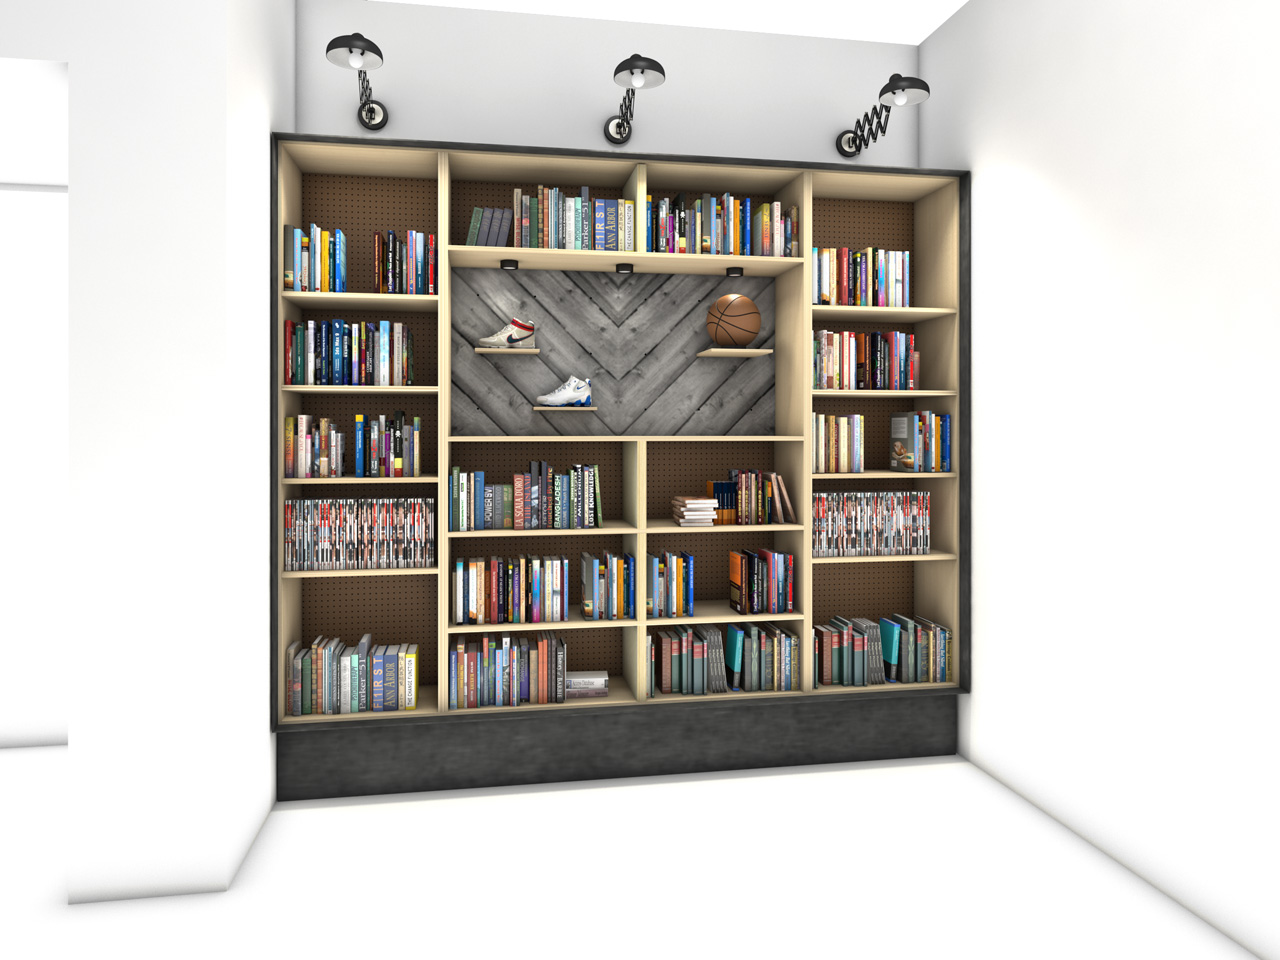 Nike: Library